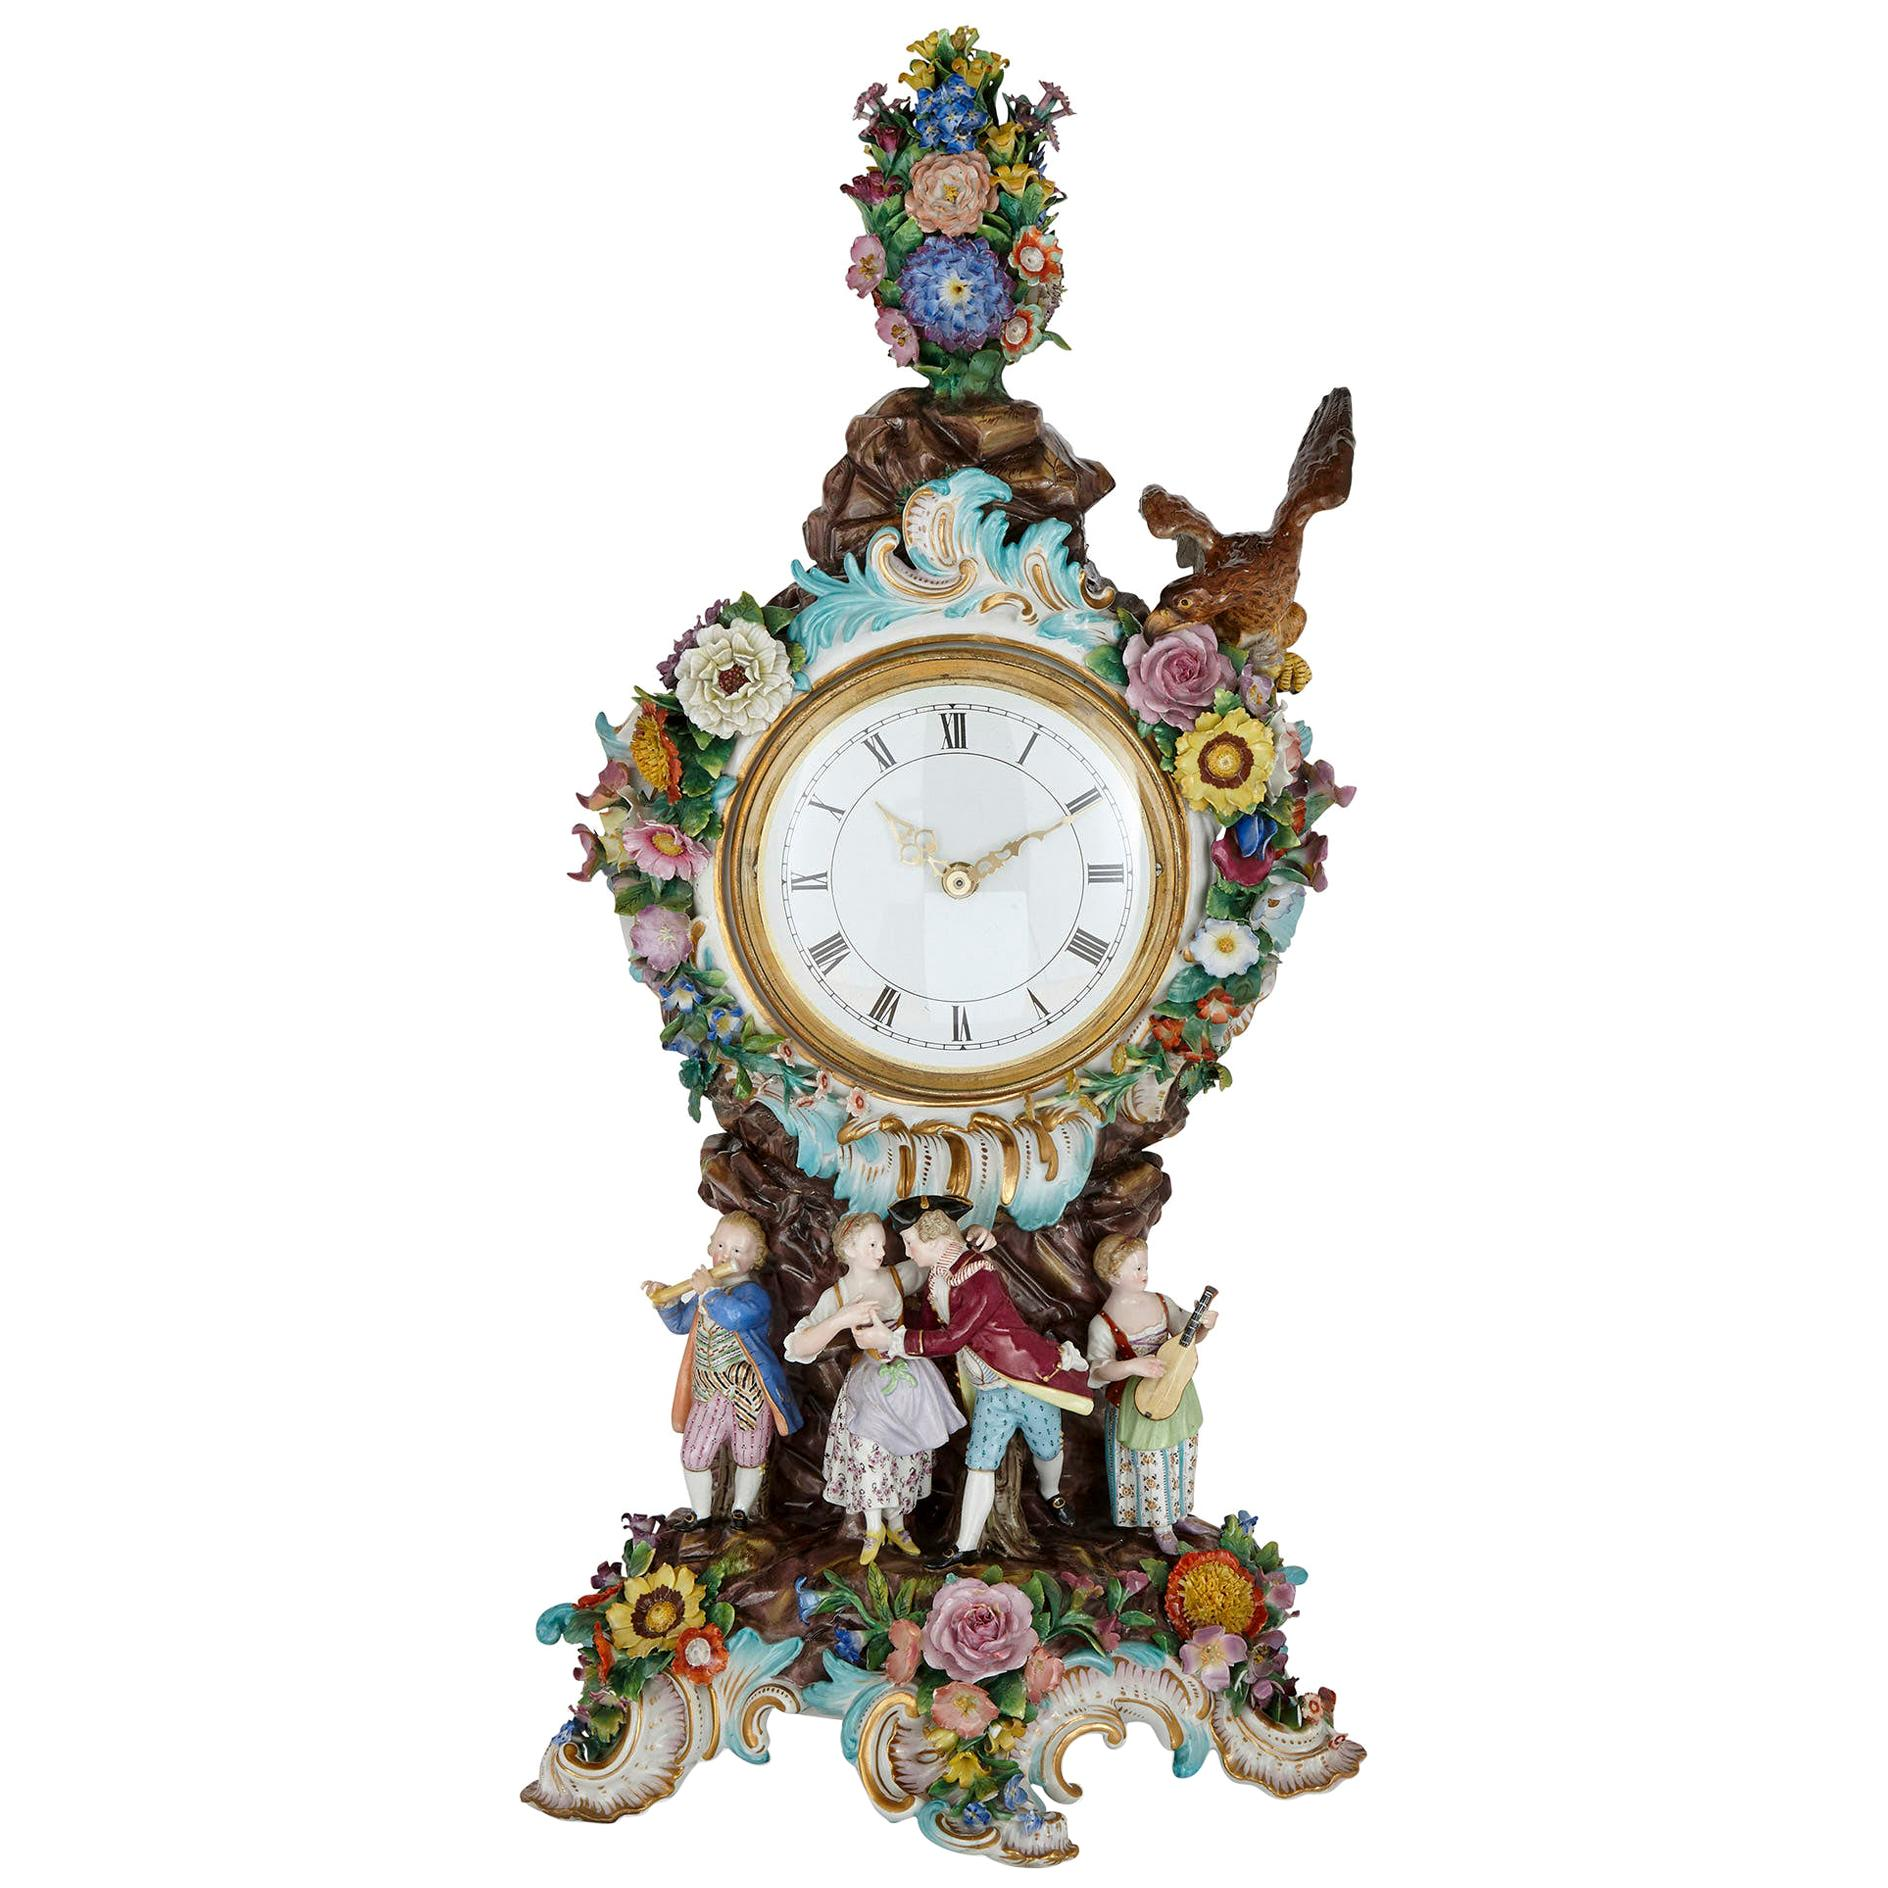 Large Rococo Style Porcelain Mantel Clock by Meissen